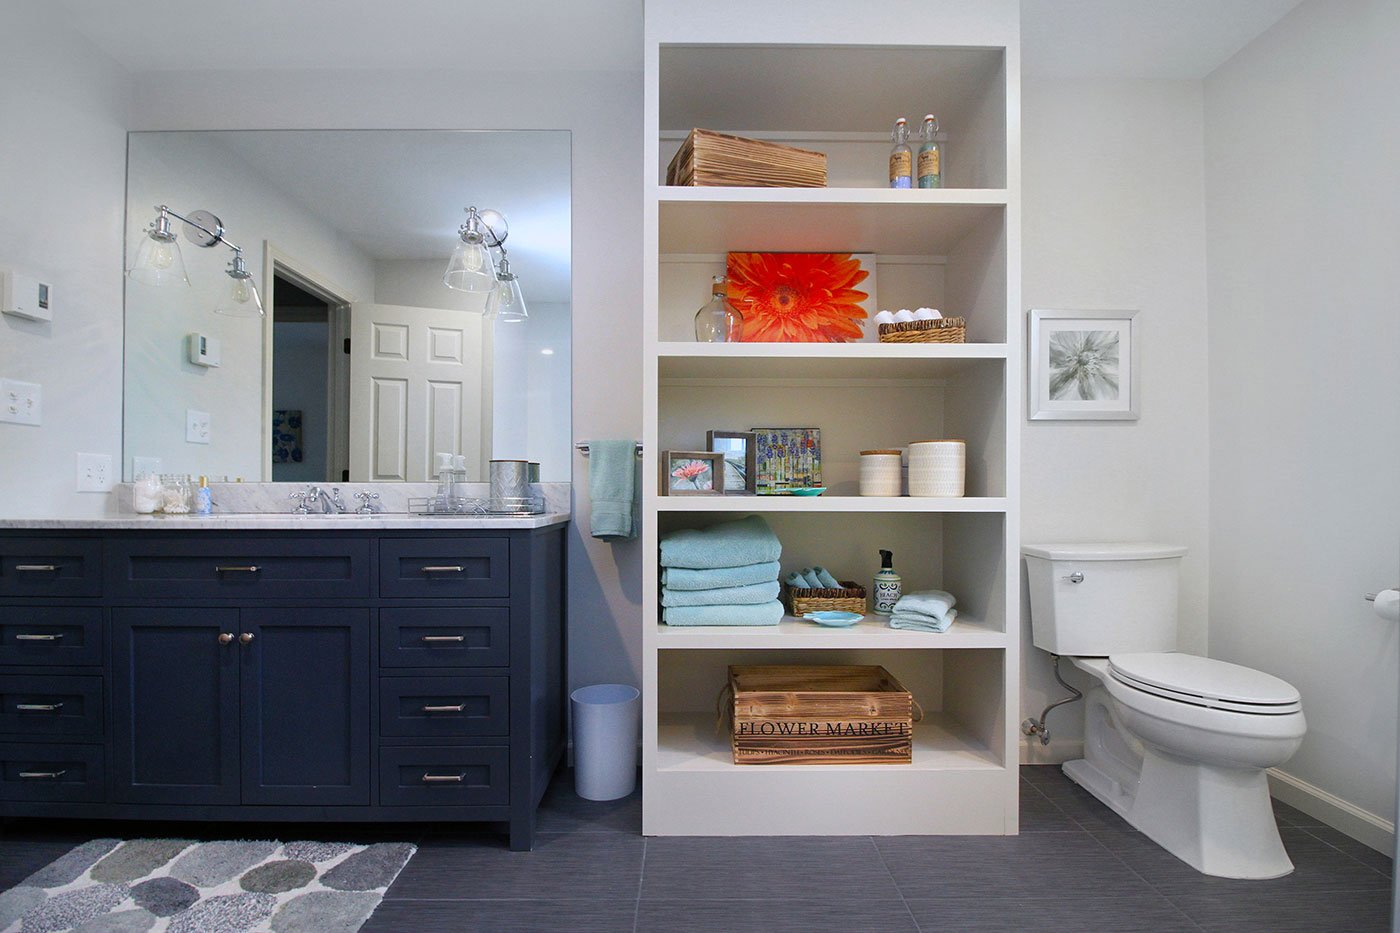 1 bathroom renovation by in-house design home construction build firm in RI